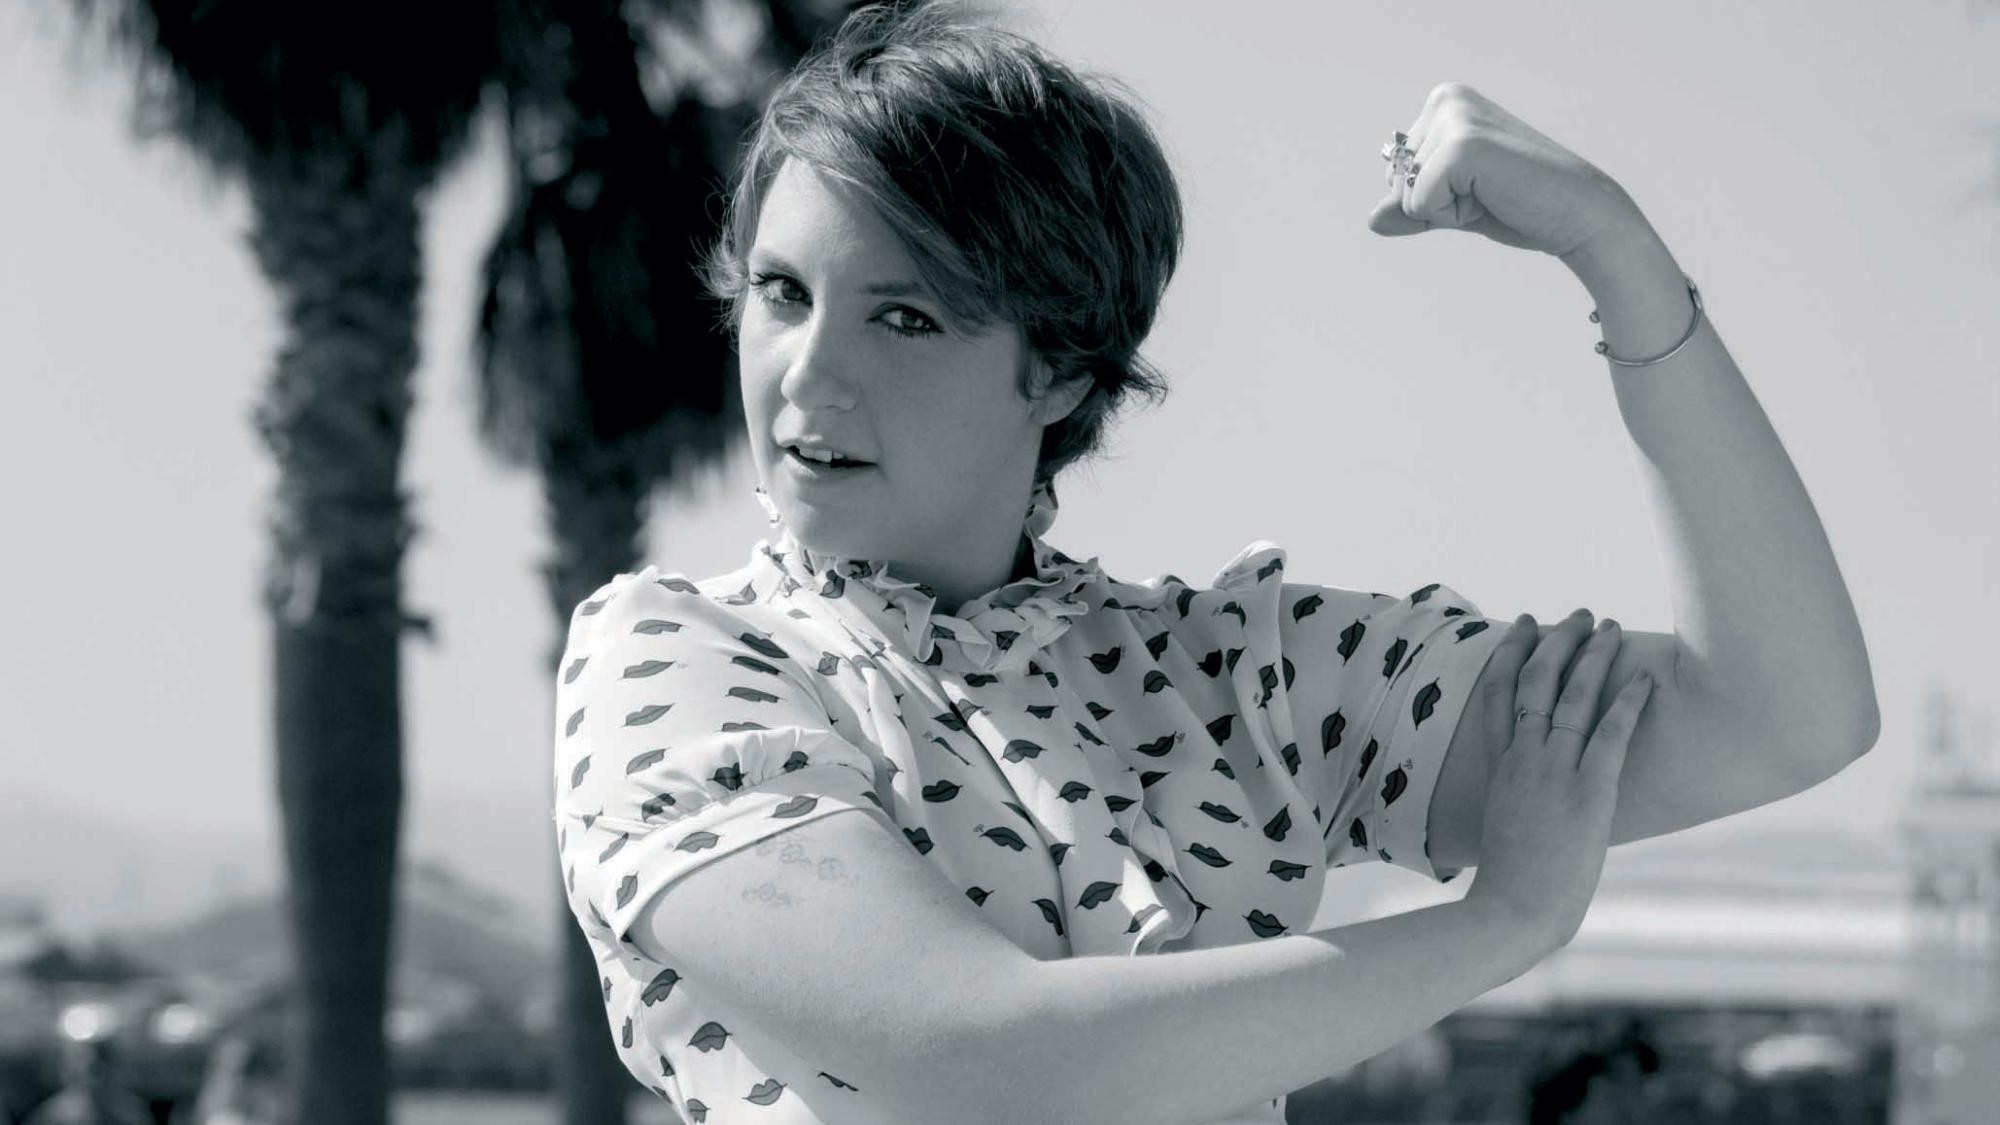 lena dunham is publishing her first collection of fiction